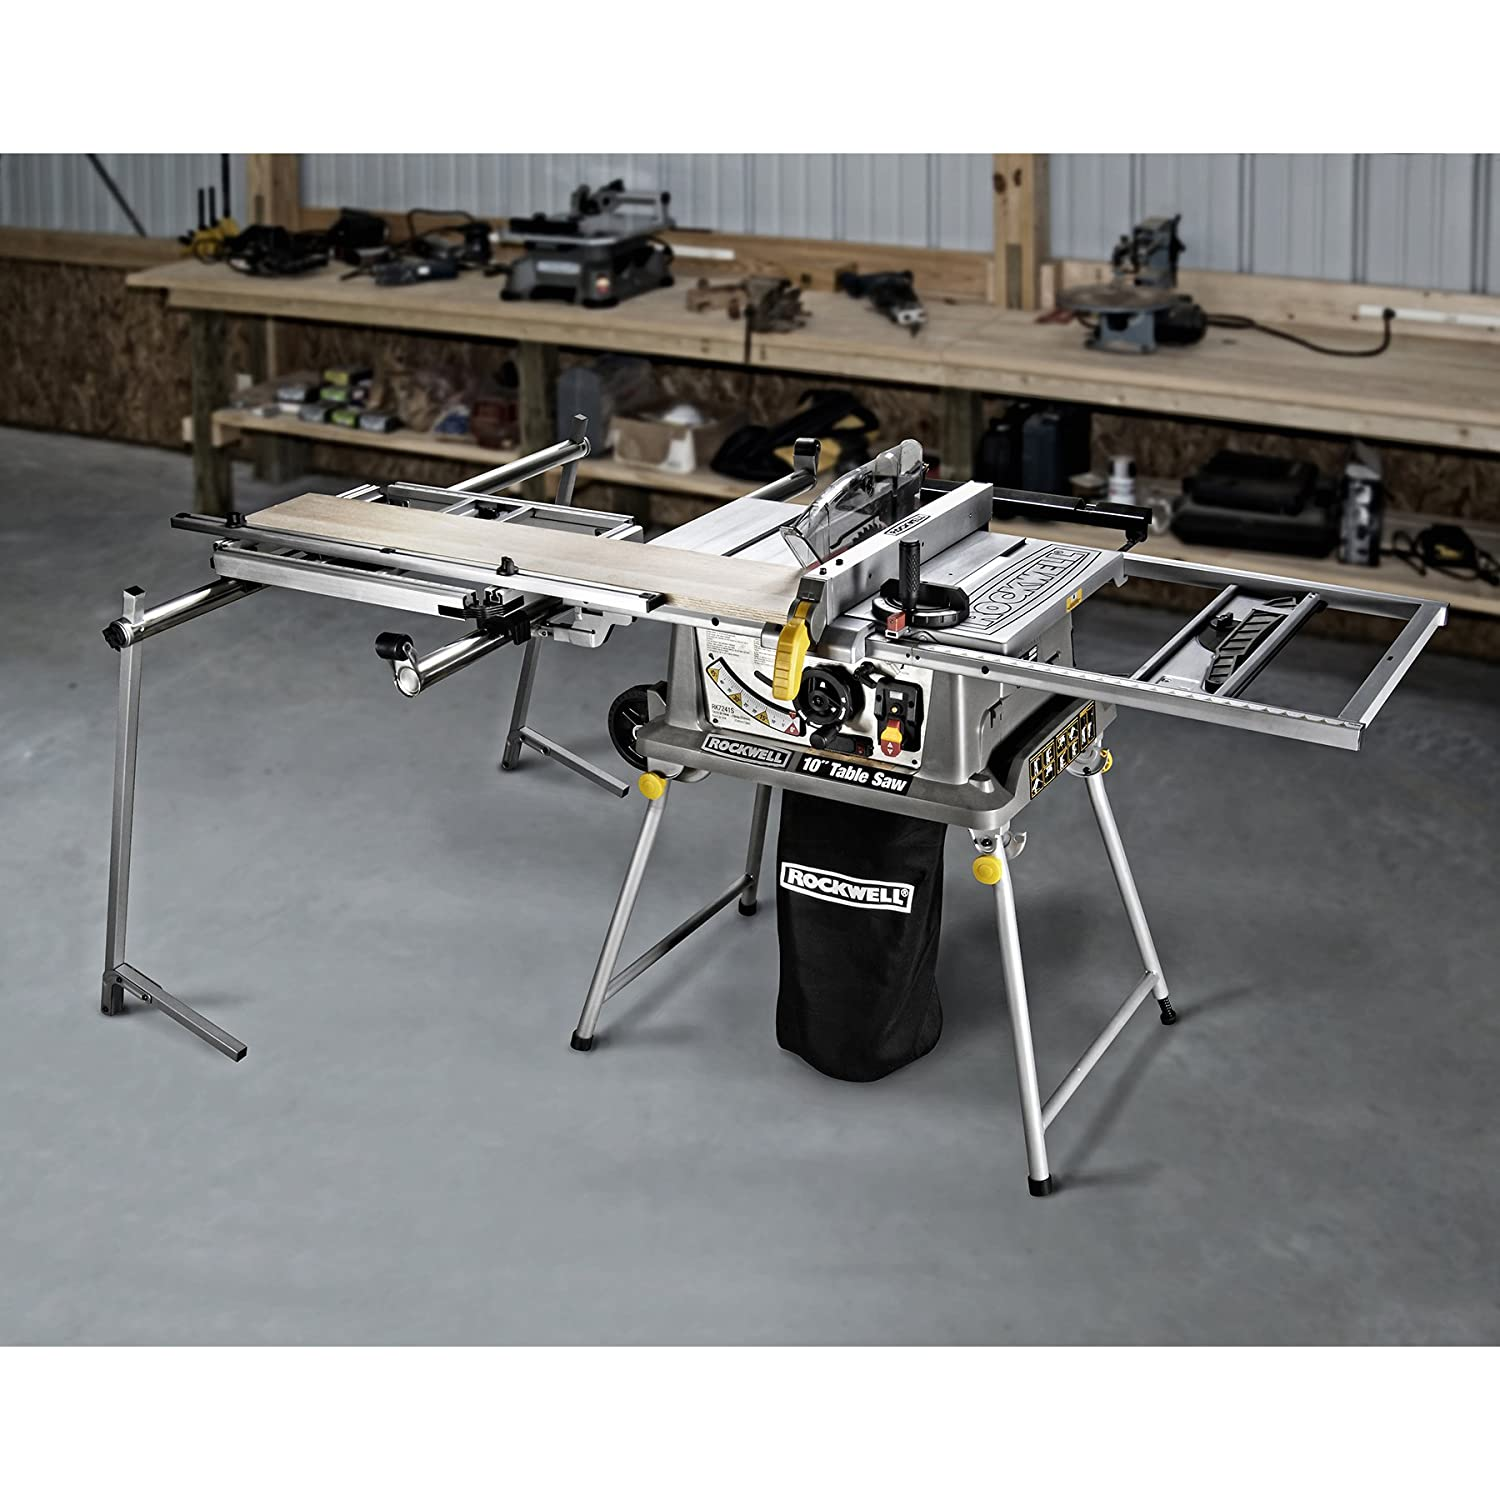 Rockwell rk7241s table saw with laser power table saws amazon keyboard keysfo Choice Image